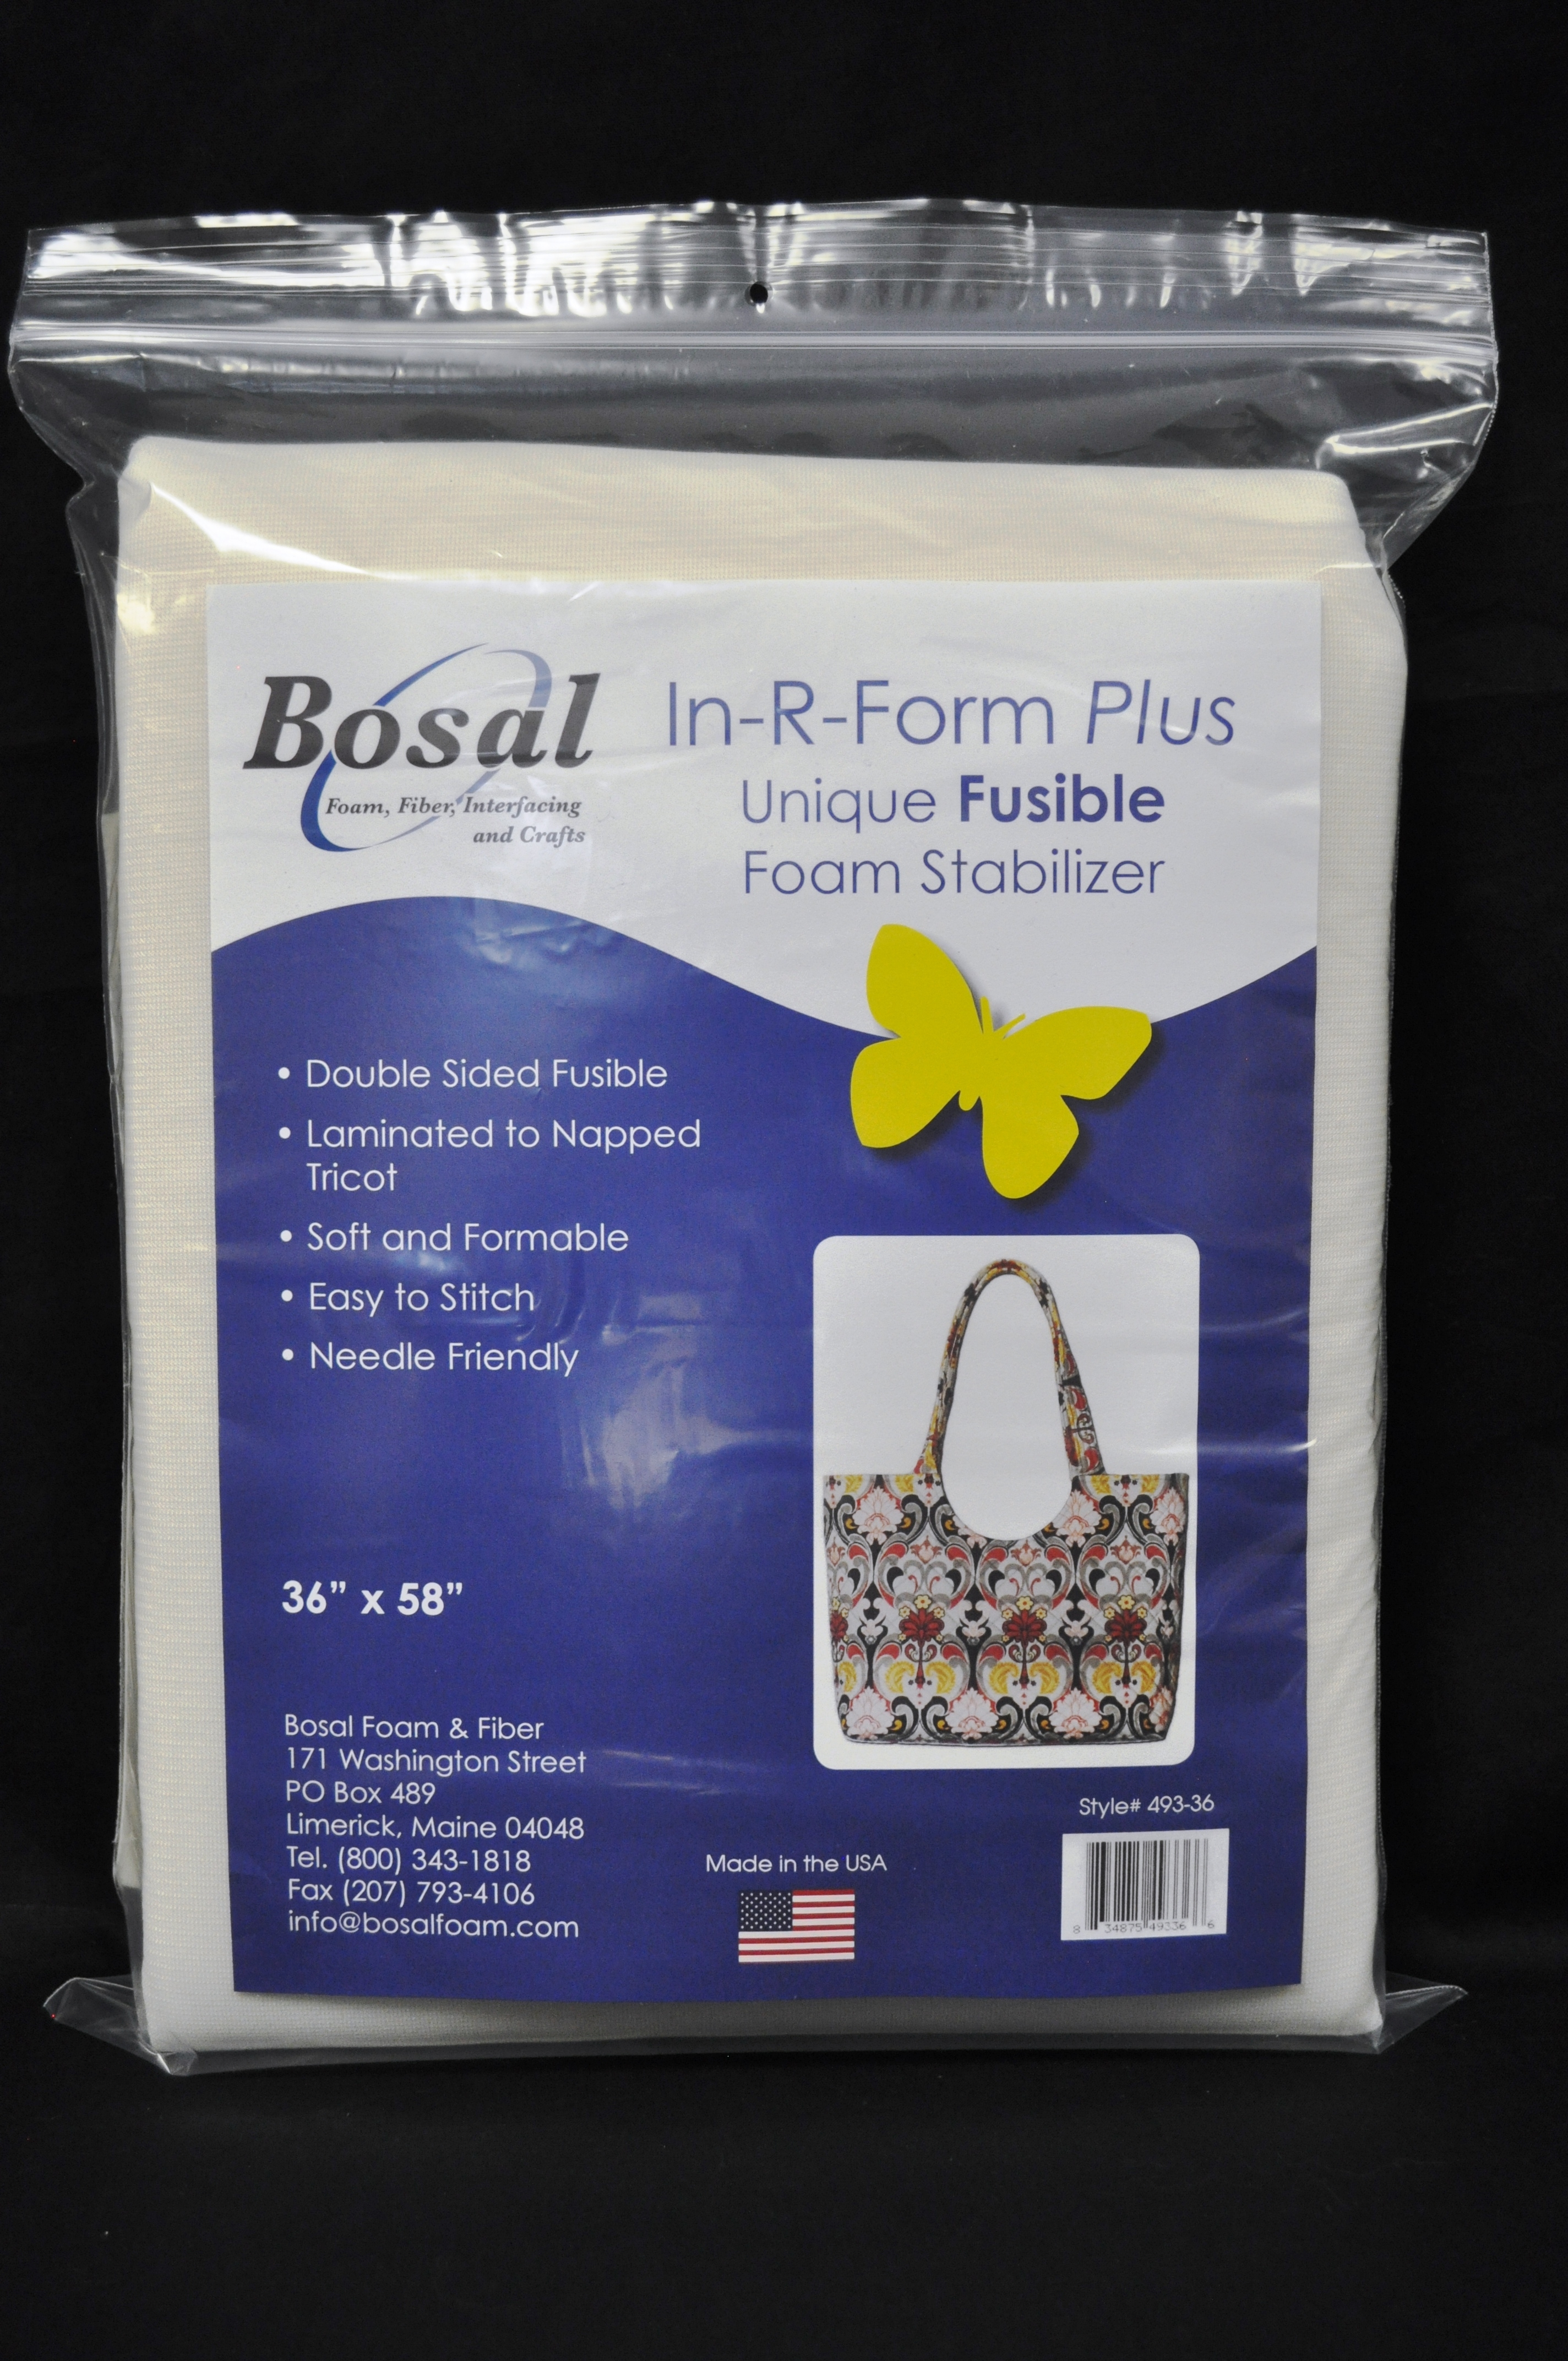 In-R-Form Plus Double Sided Fusible Foam Stabilizer 36 x 58